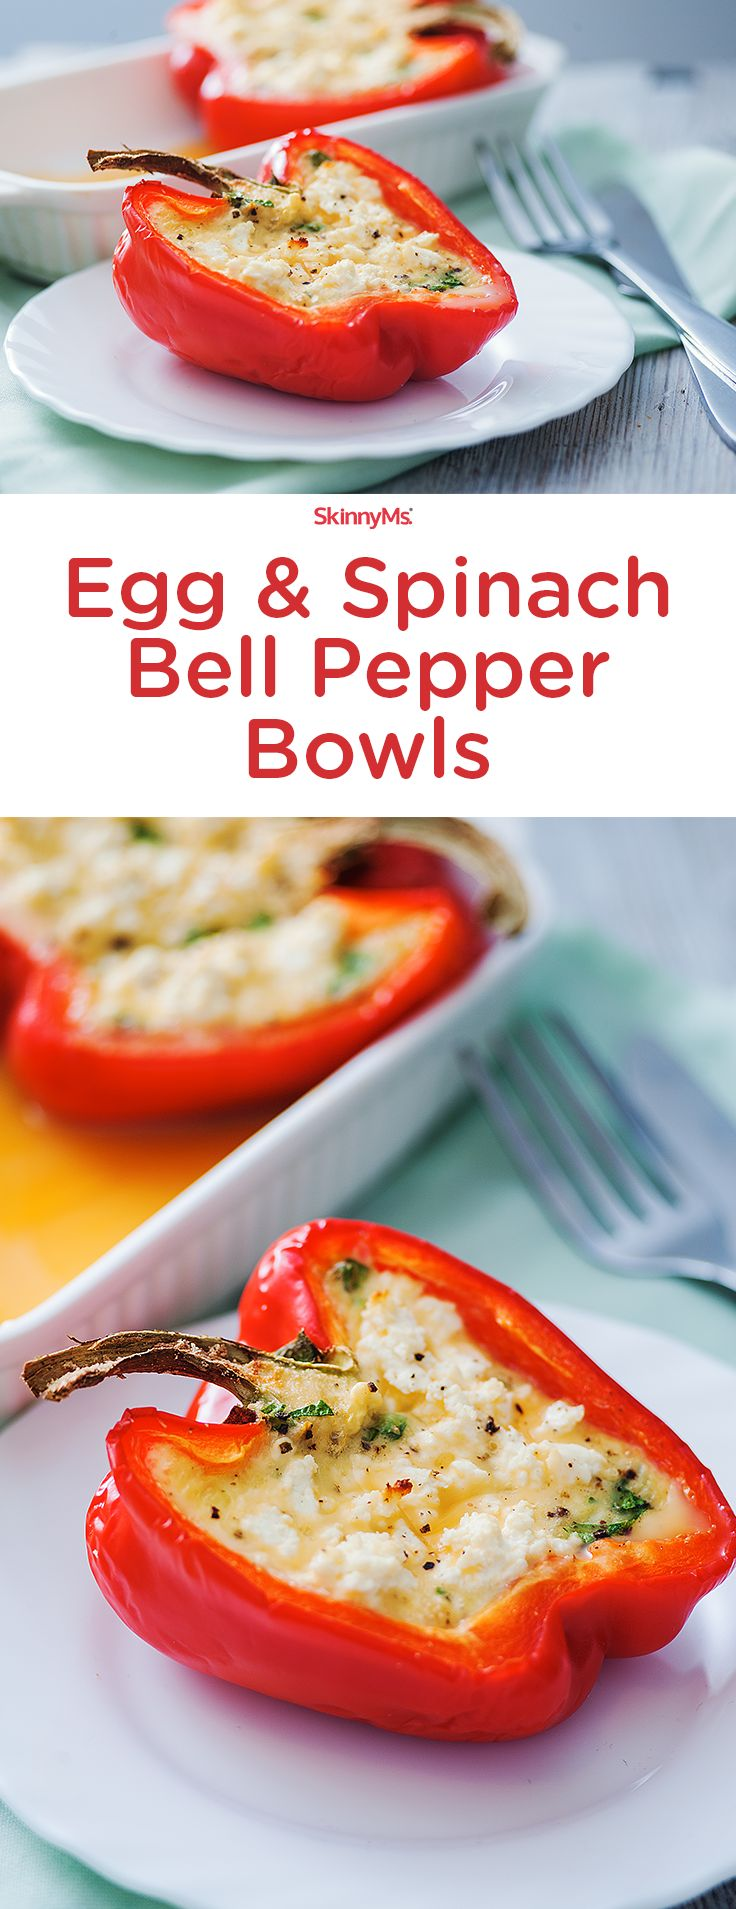 These Egg & Spinach Bell Pepper Bowls are beyond simple to make. You'll come back to them again and again, we promise. Dig in and enjoy!